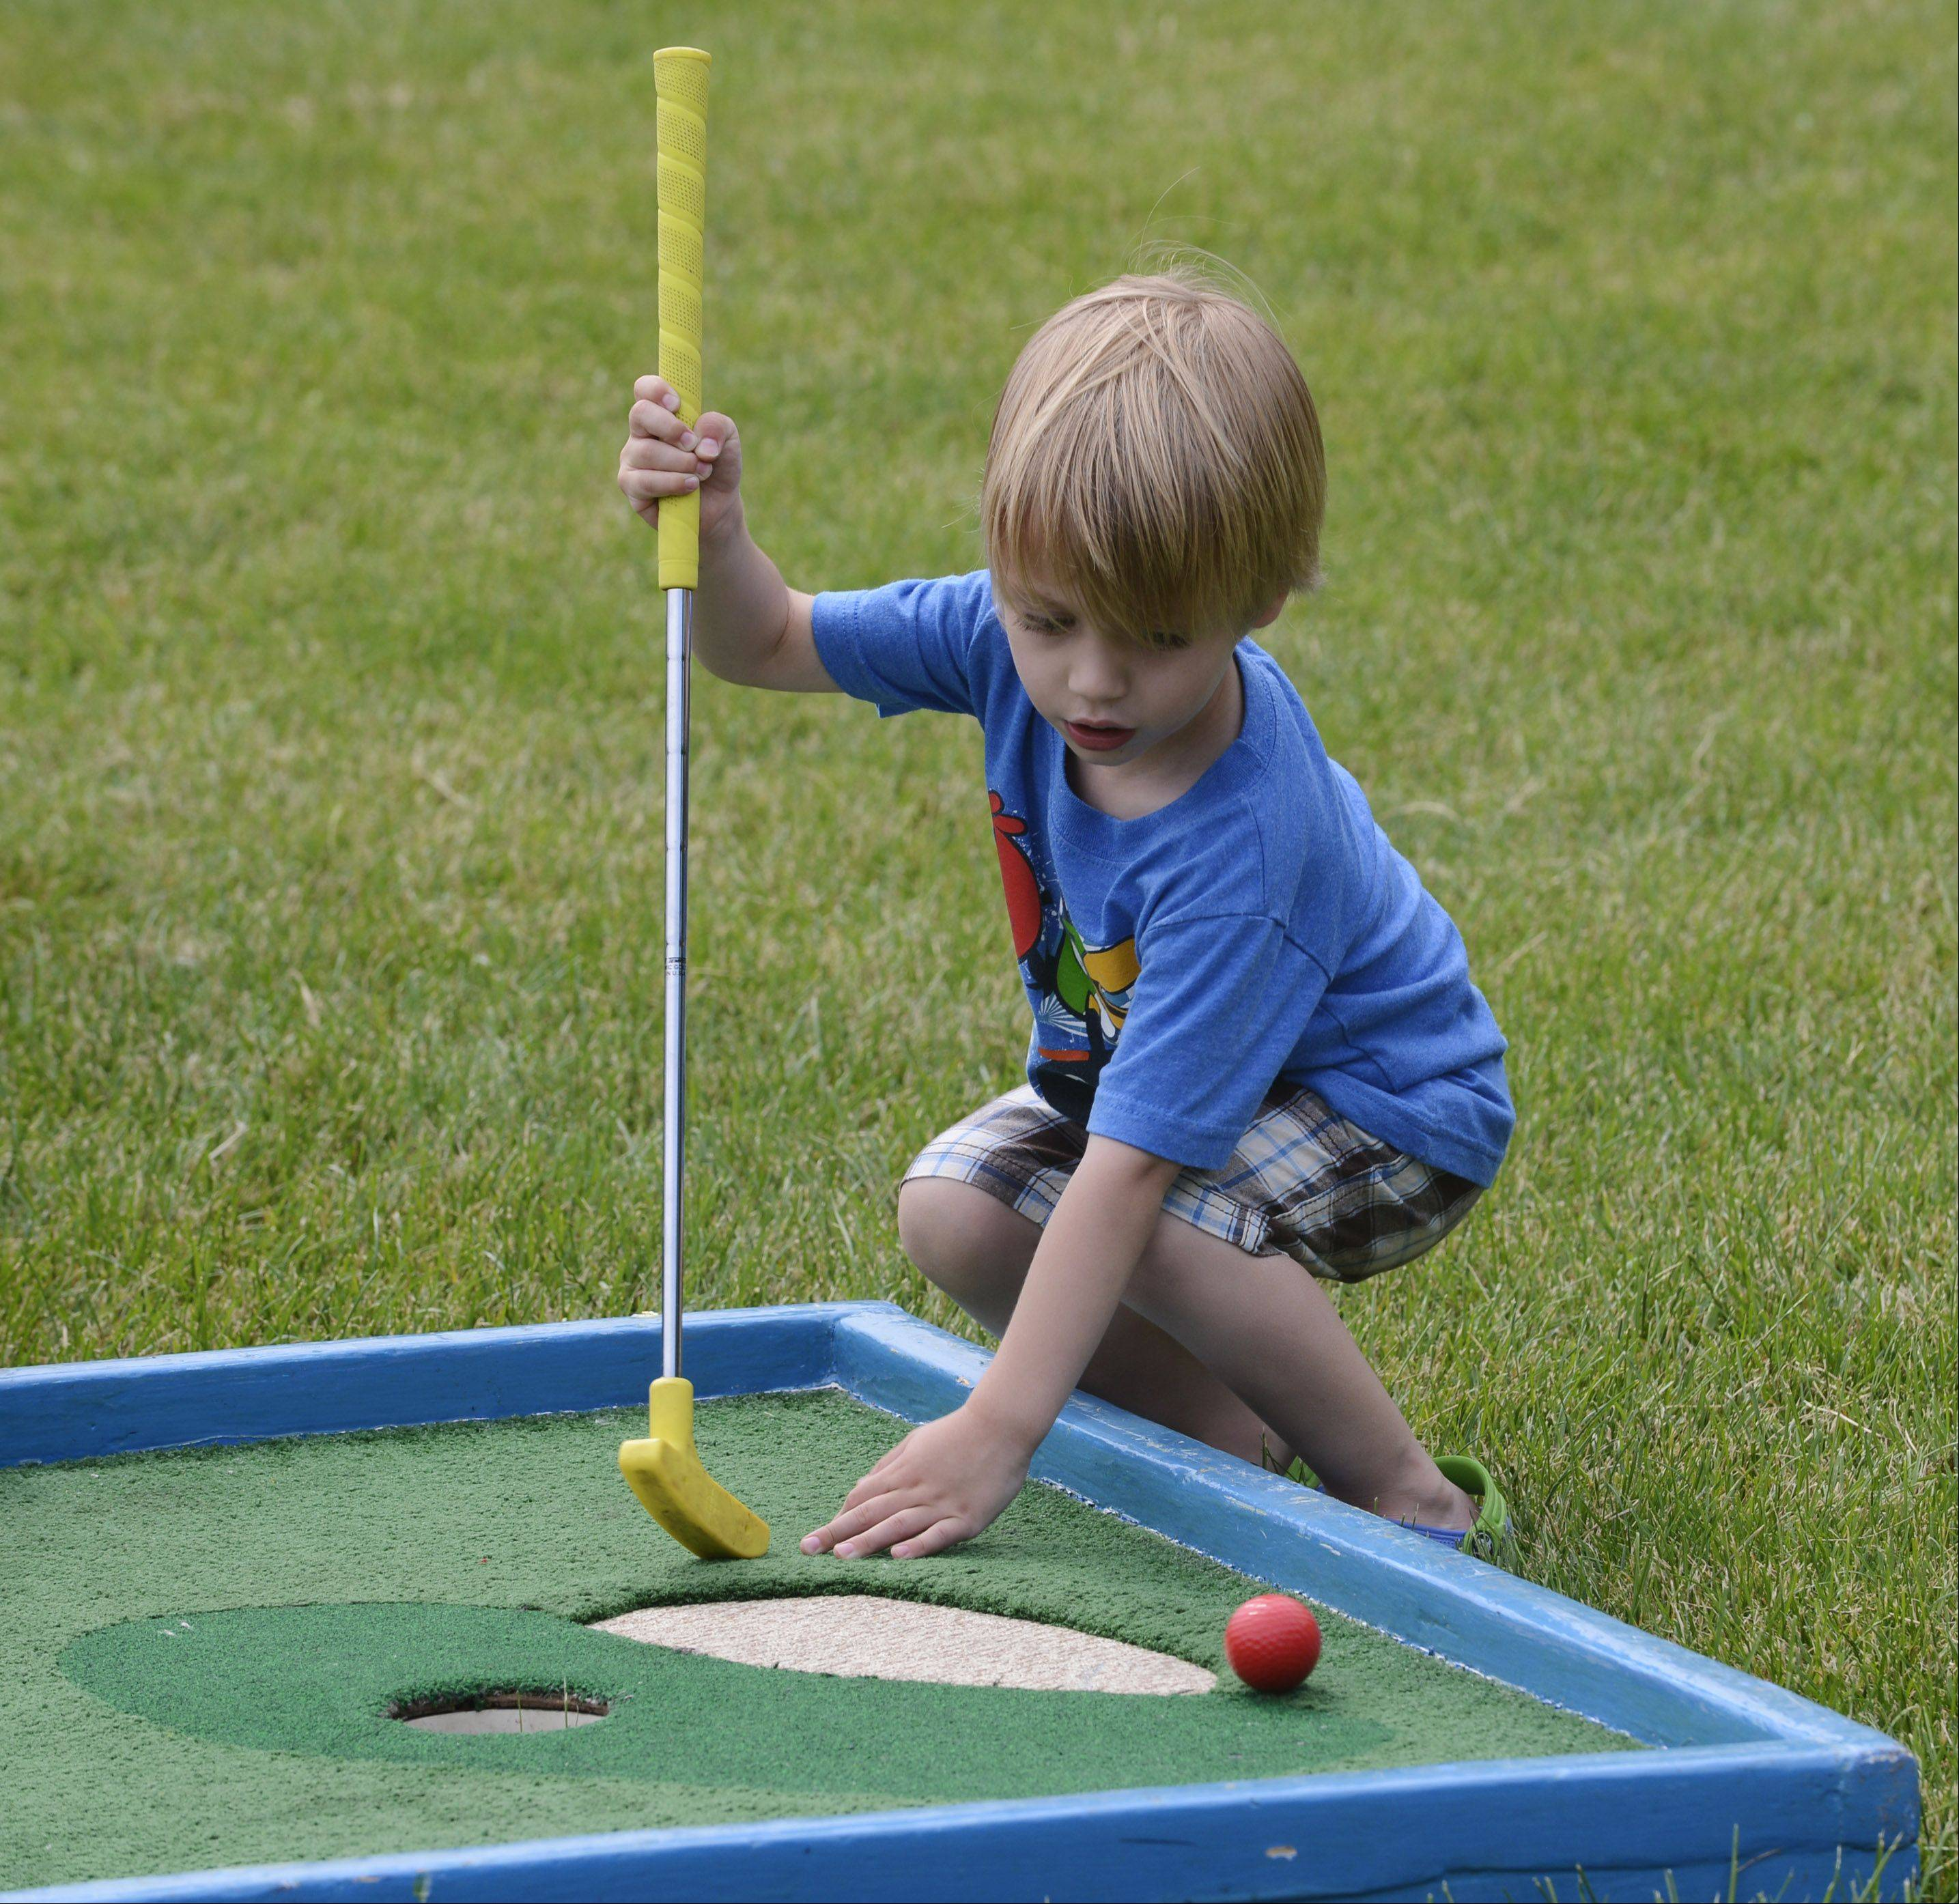 Pacific Toll, 3, of Prospect Heights debates his best shot around the sand trap on the miniature golf course.